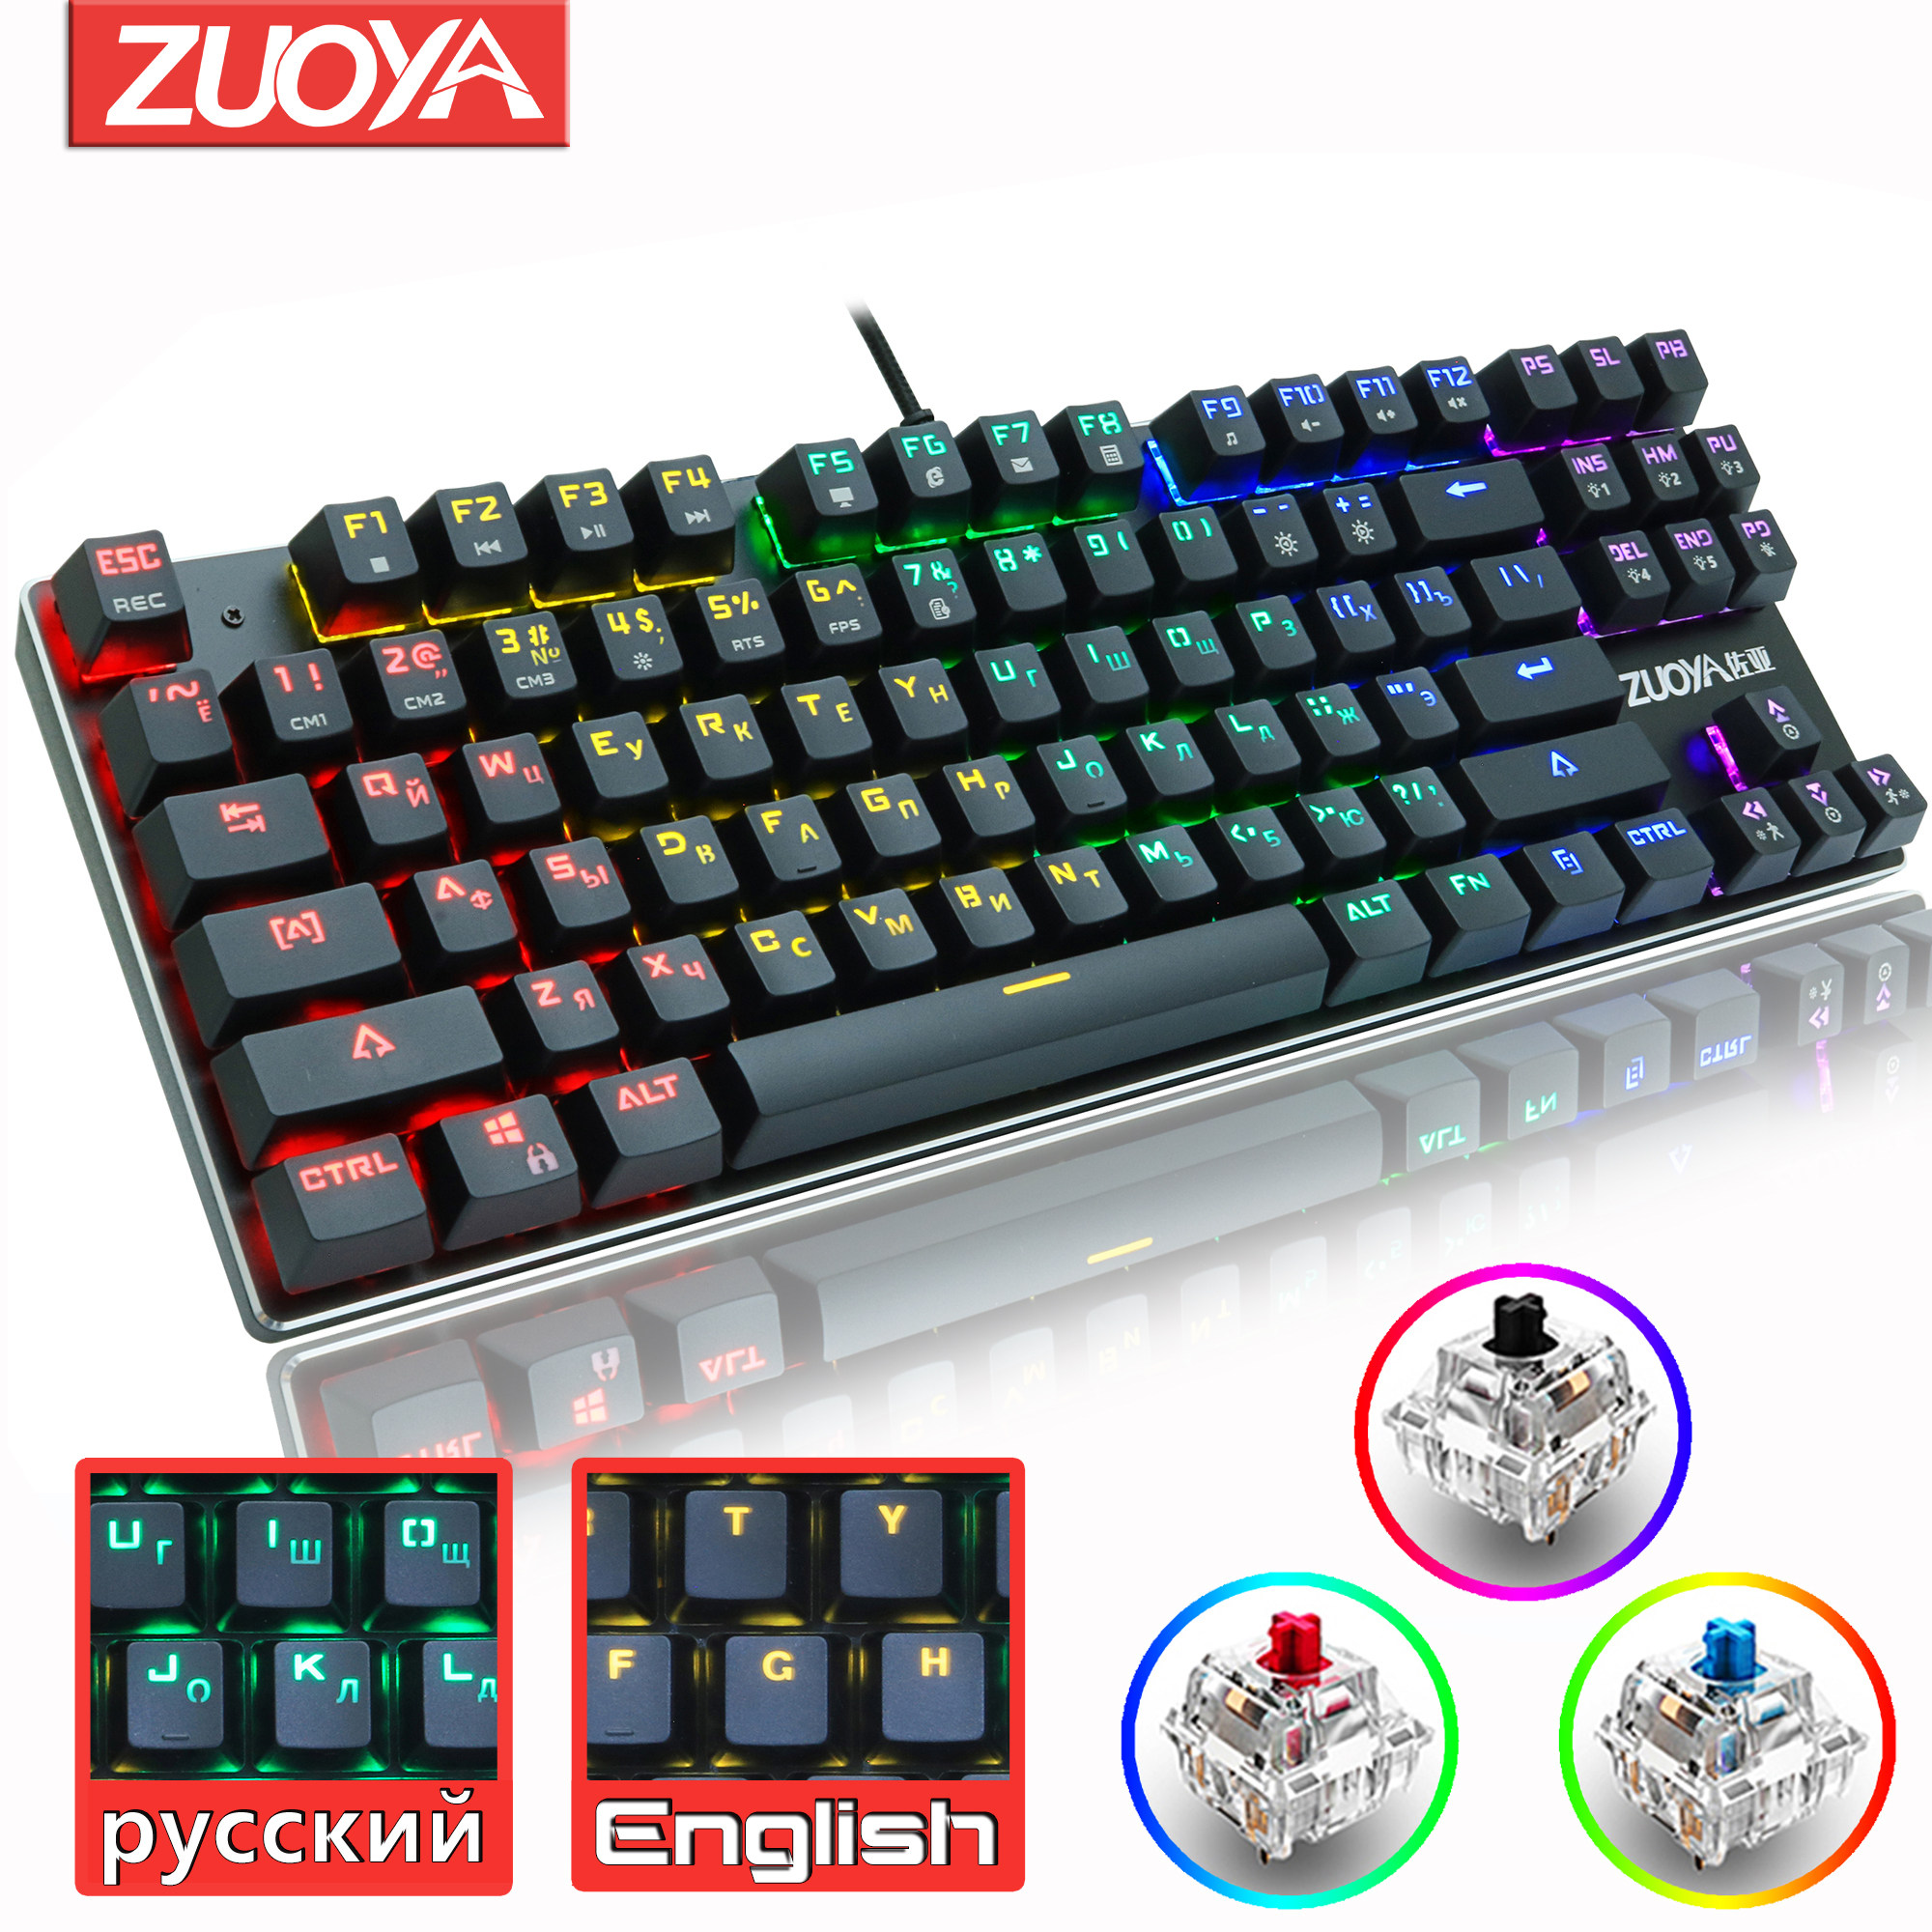 Axis Body : Black Switch, Color : 87black Mix Light RU HUOGUOYIN Gaming Keyboard Games Mechanical Keyboard Switch 87 Blue Red//Backlight LED 104 Notebook Computer for Gamers Keyboard